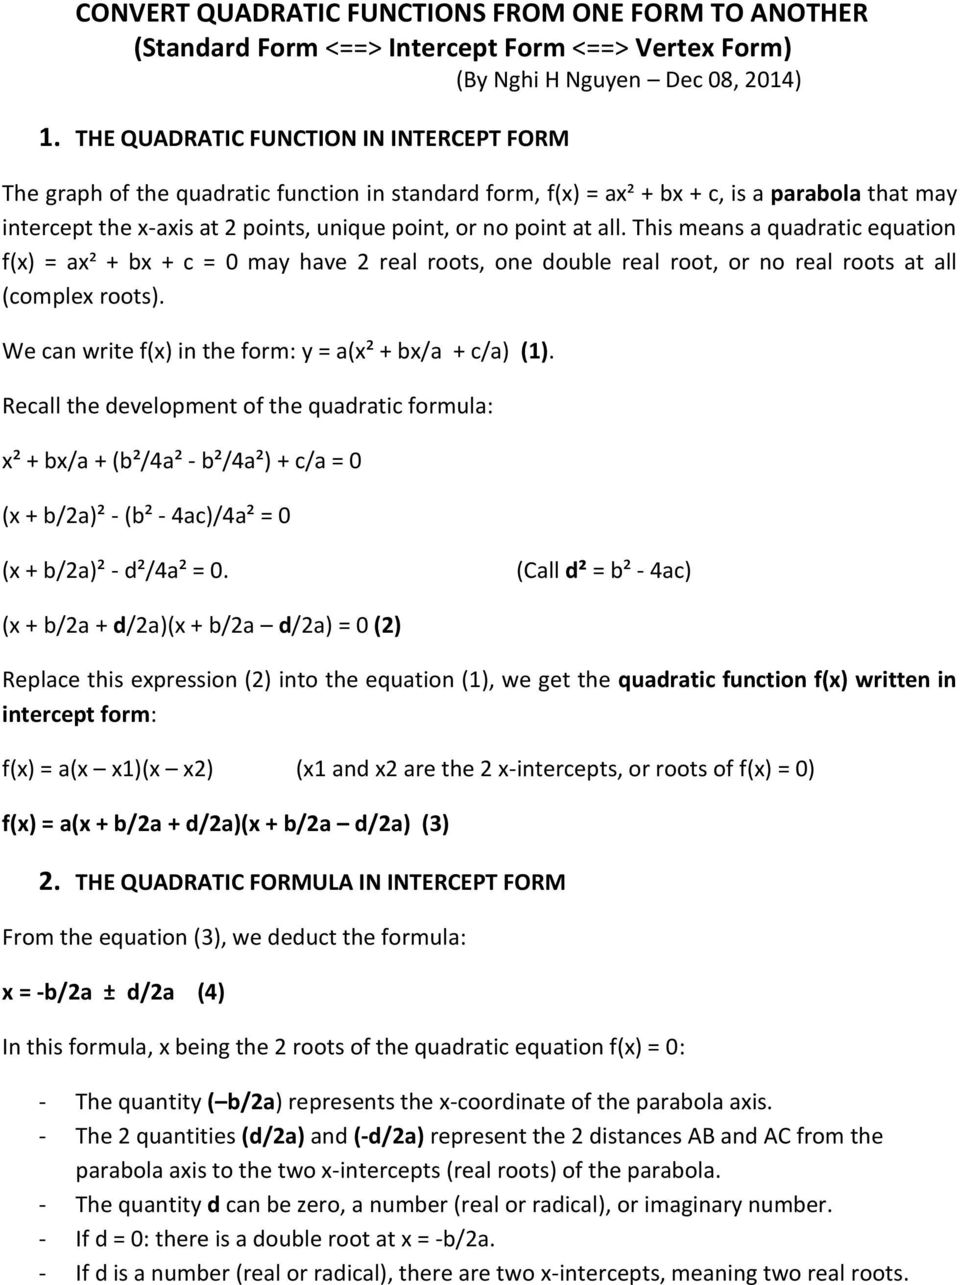 Convert Quadratic Functions From One Form To Another Standard Form